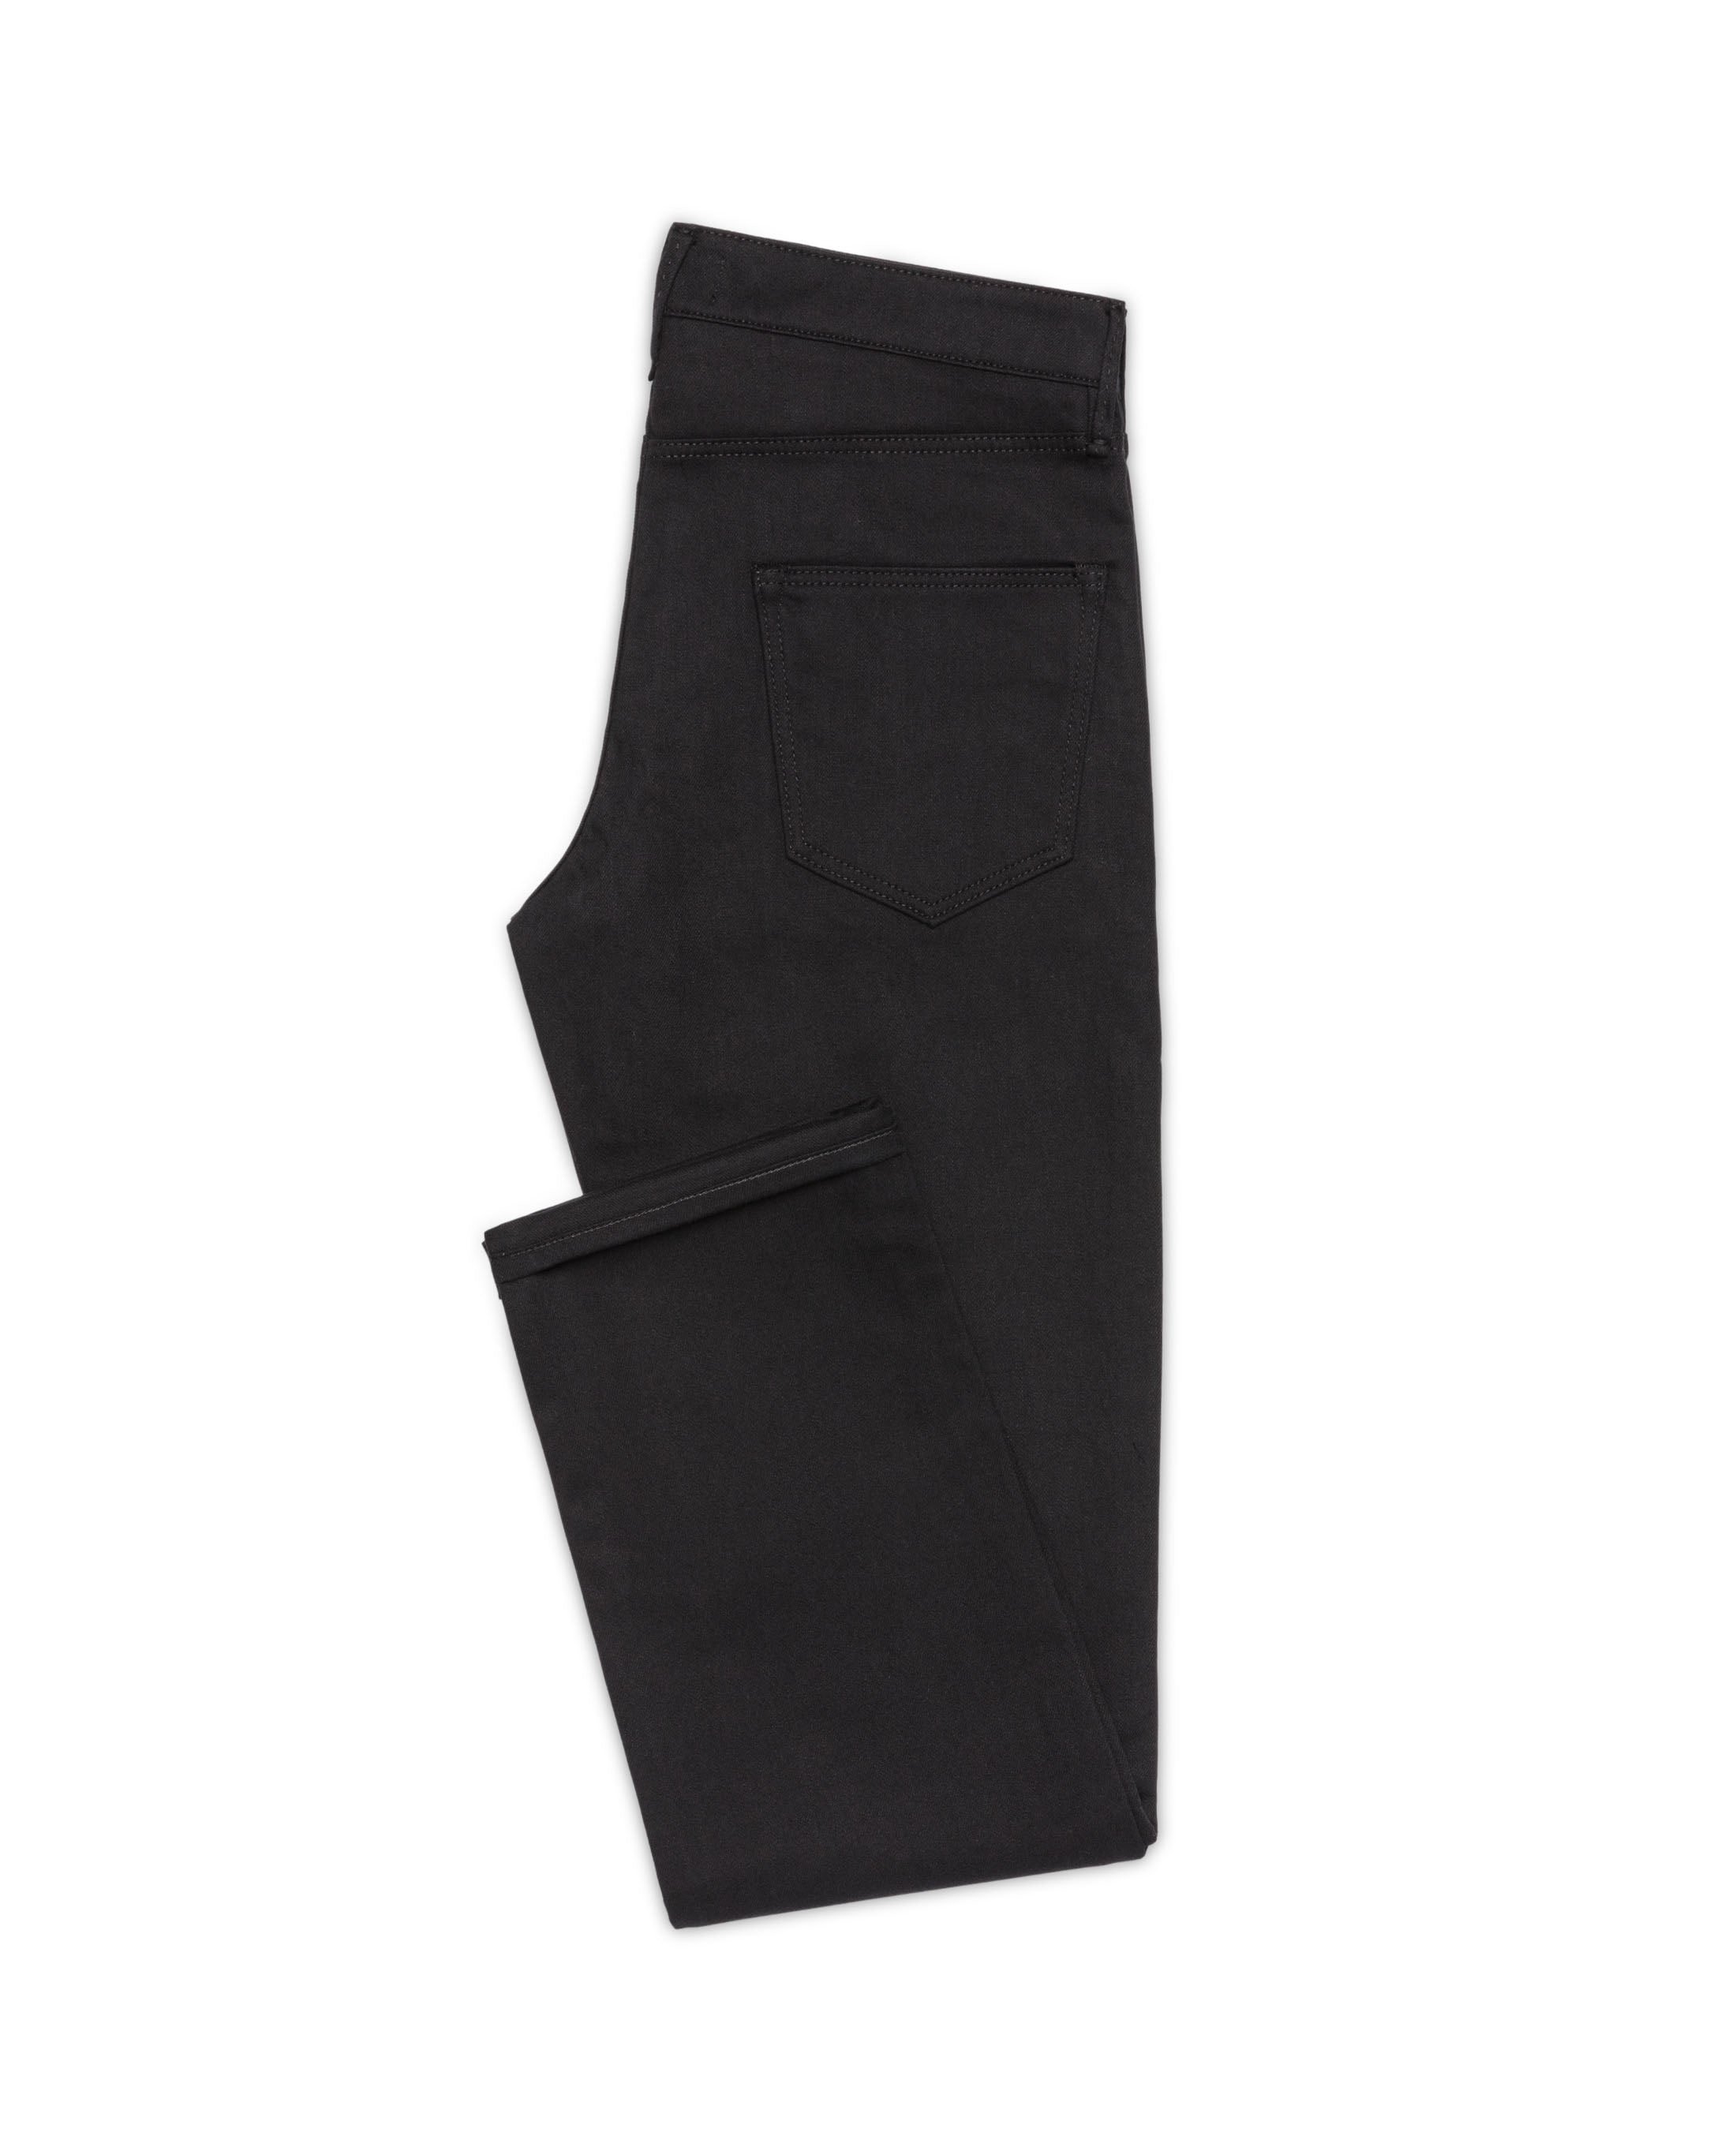 COL006 Black 5 pocket Made In Italy. Medlemspris 1.000,-